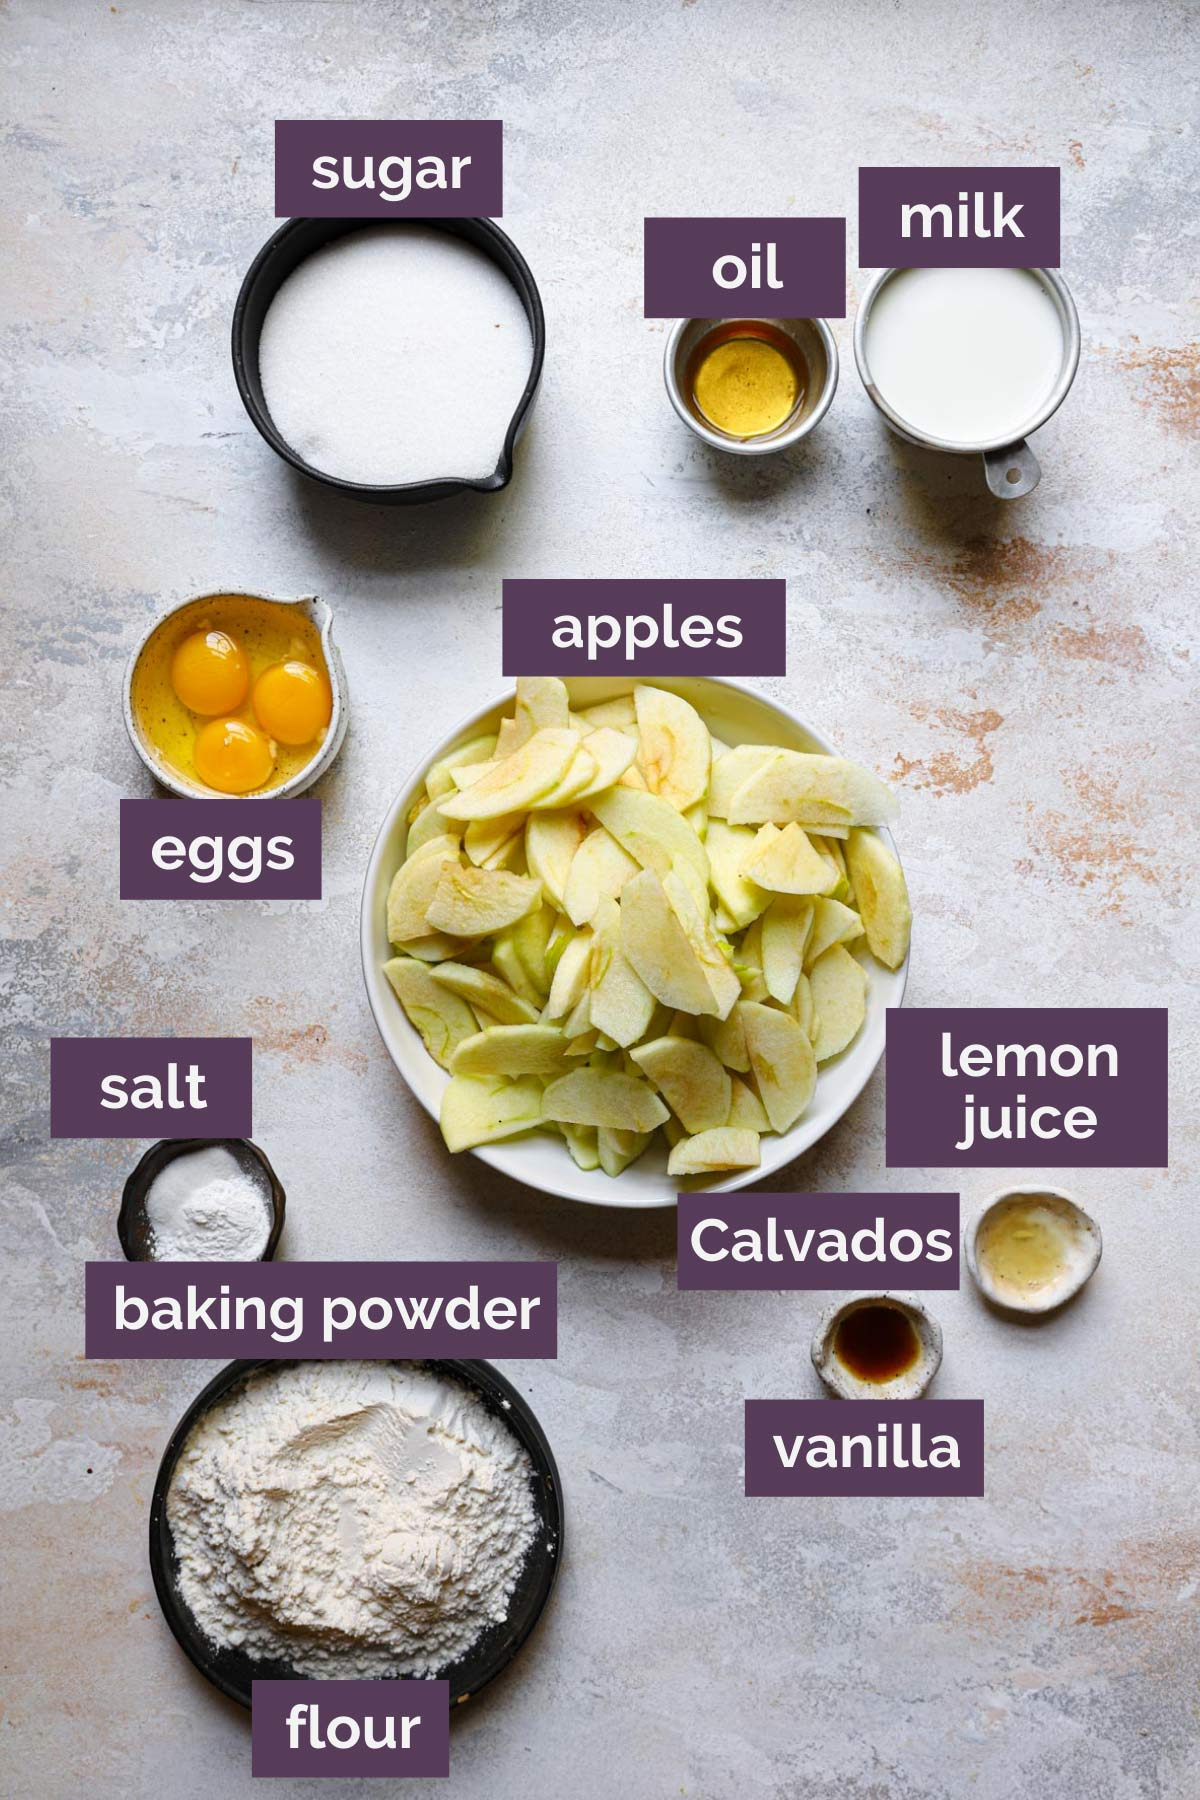 Ingredients for French apple cake prepped on a counter and labeled.